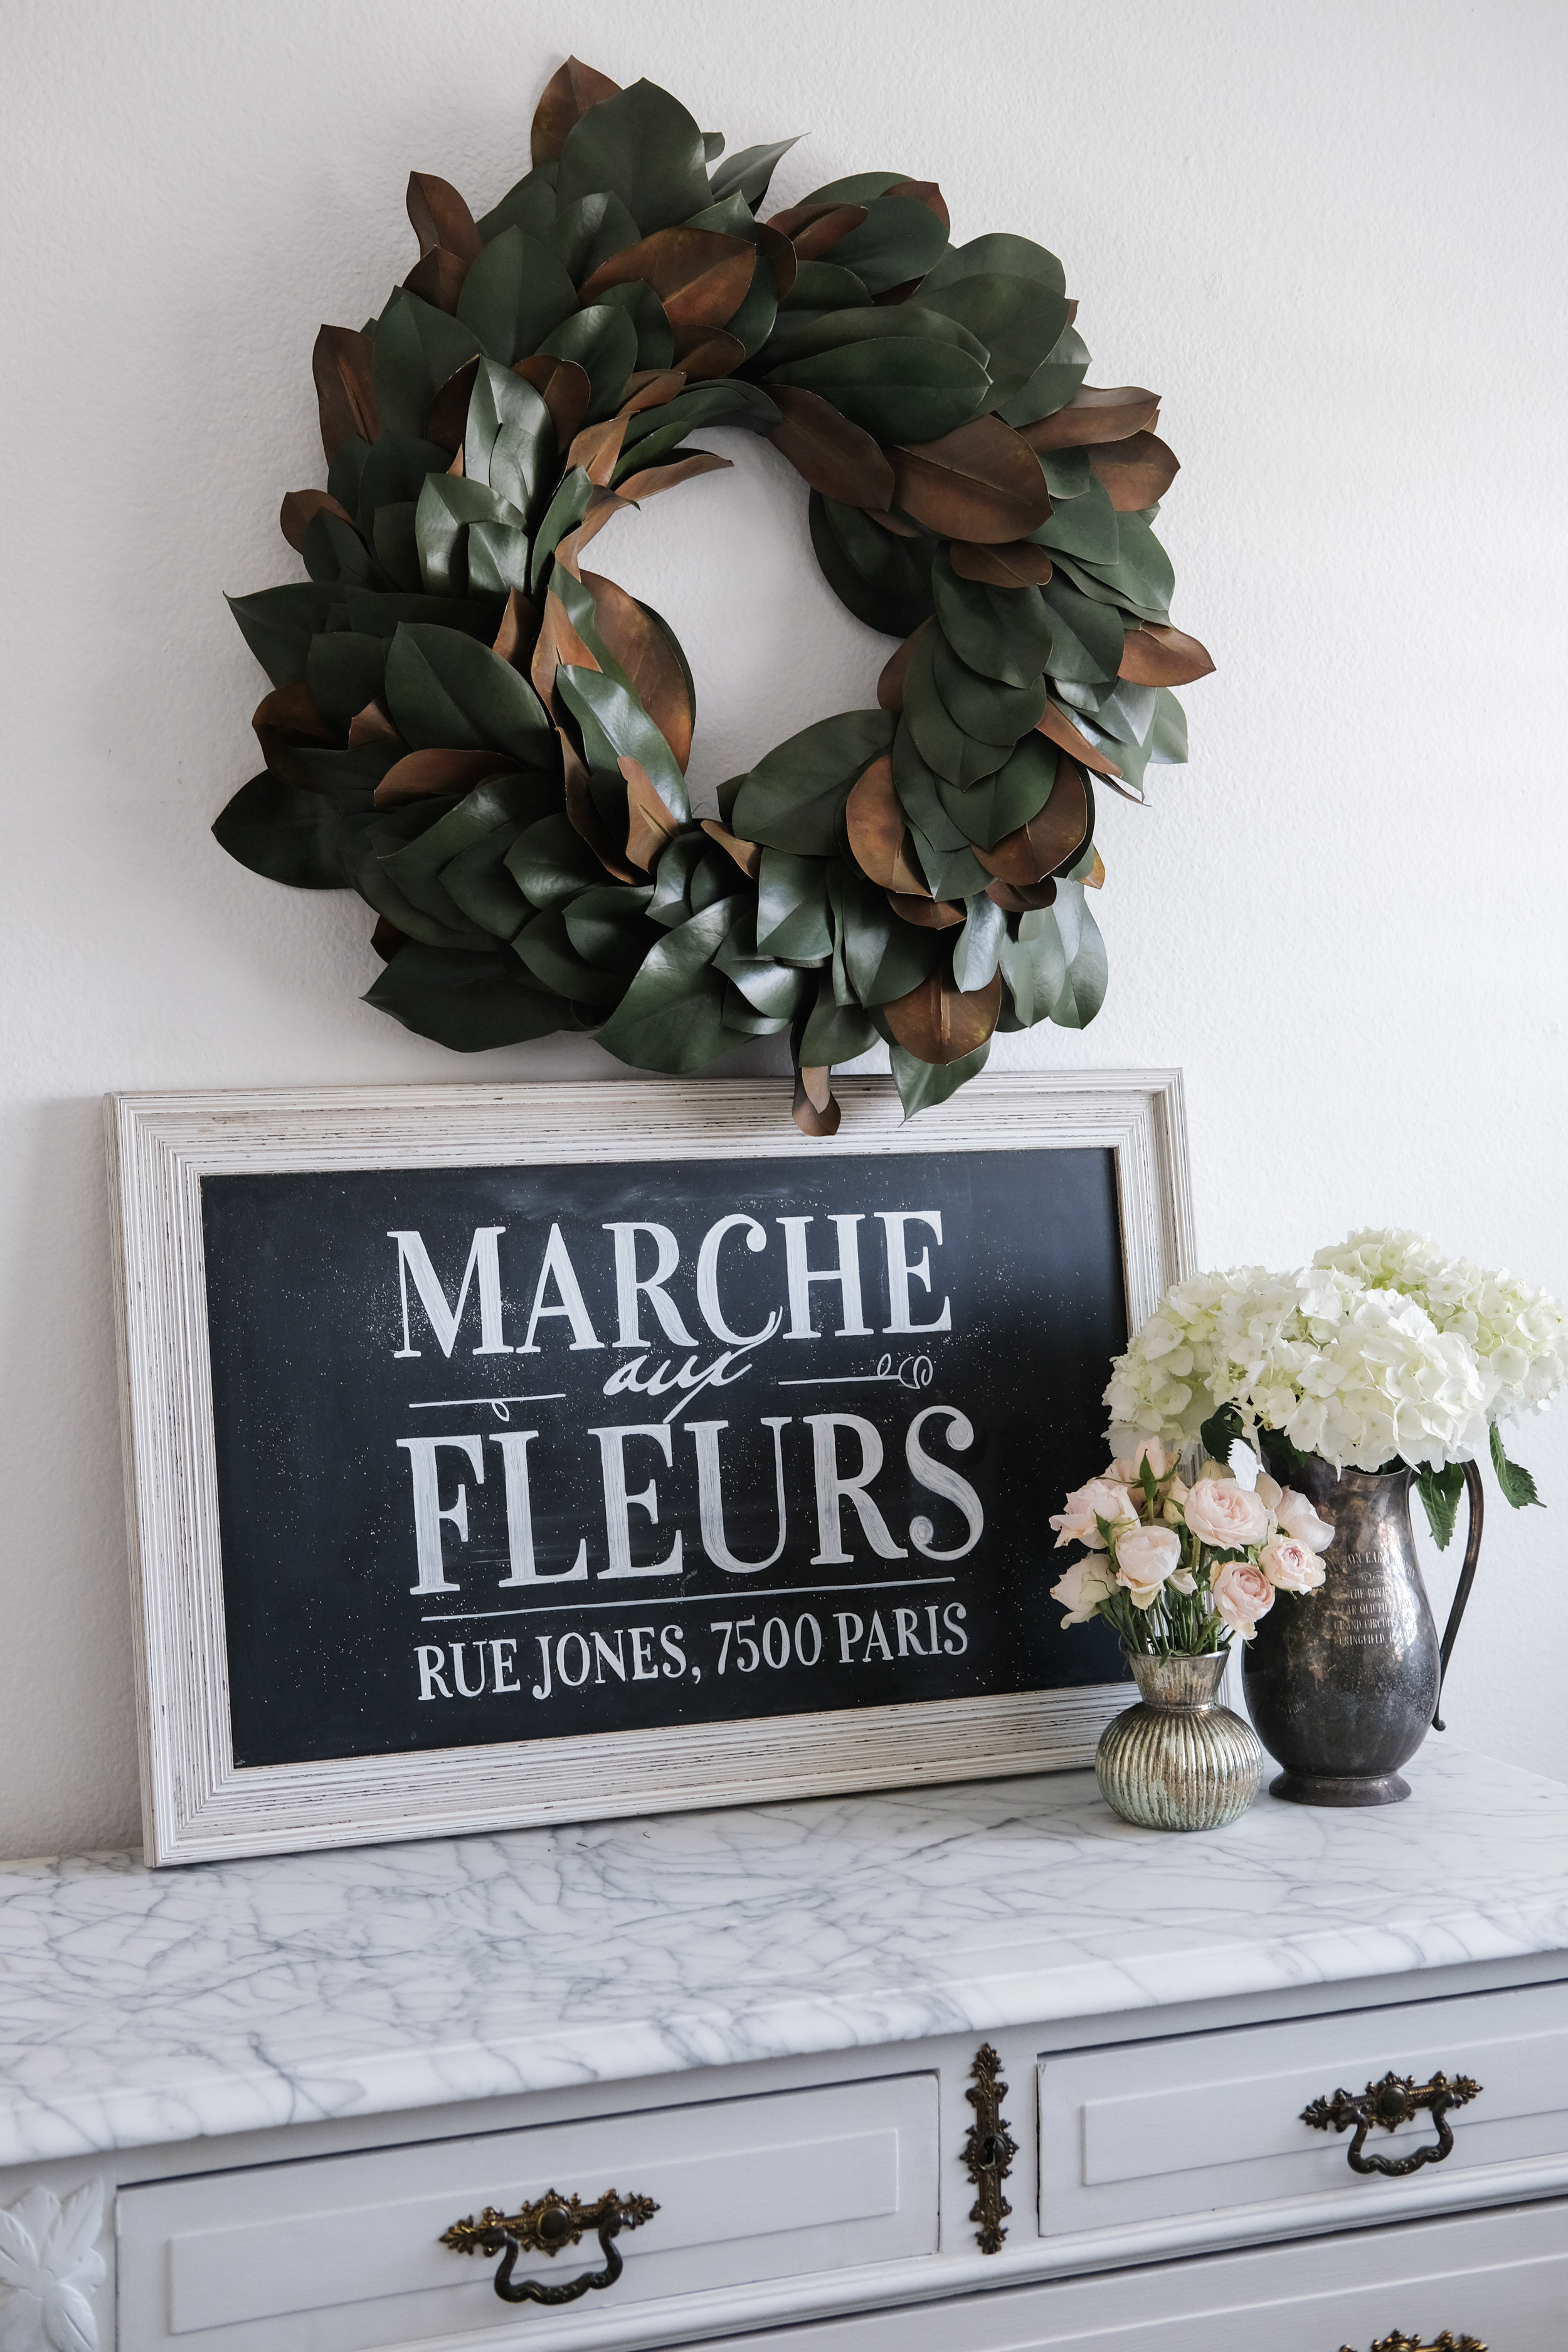 DIY chalkboard sign with perfect lettering.  How to create a chalkboard sign without a stencil.  Secret to perfectly lettered chalkboard signs.